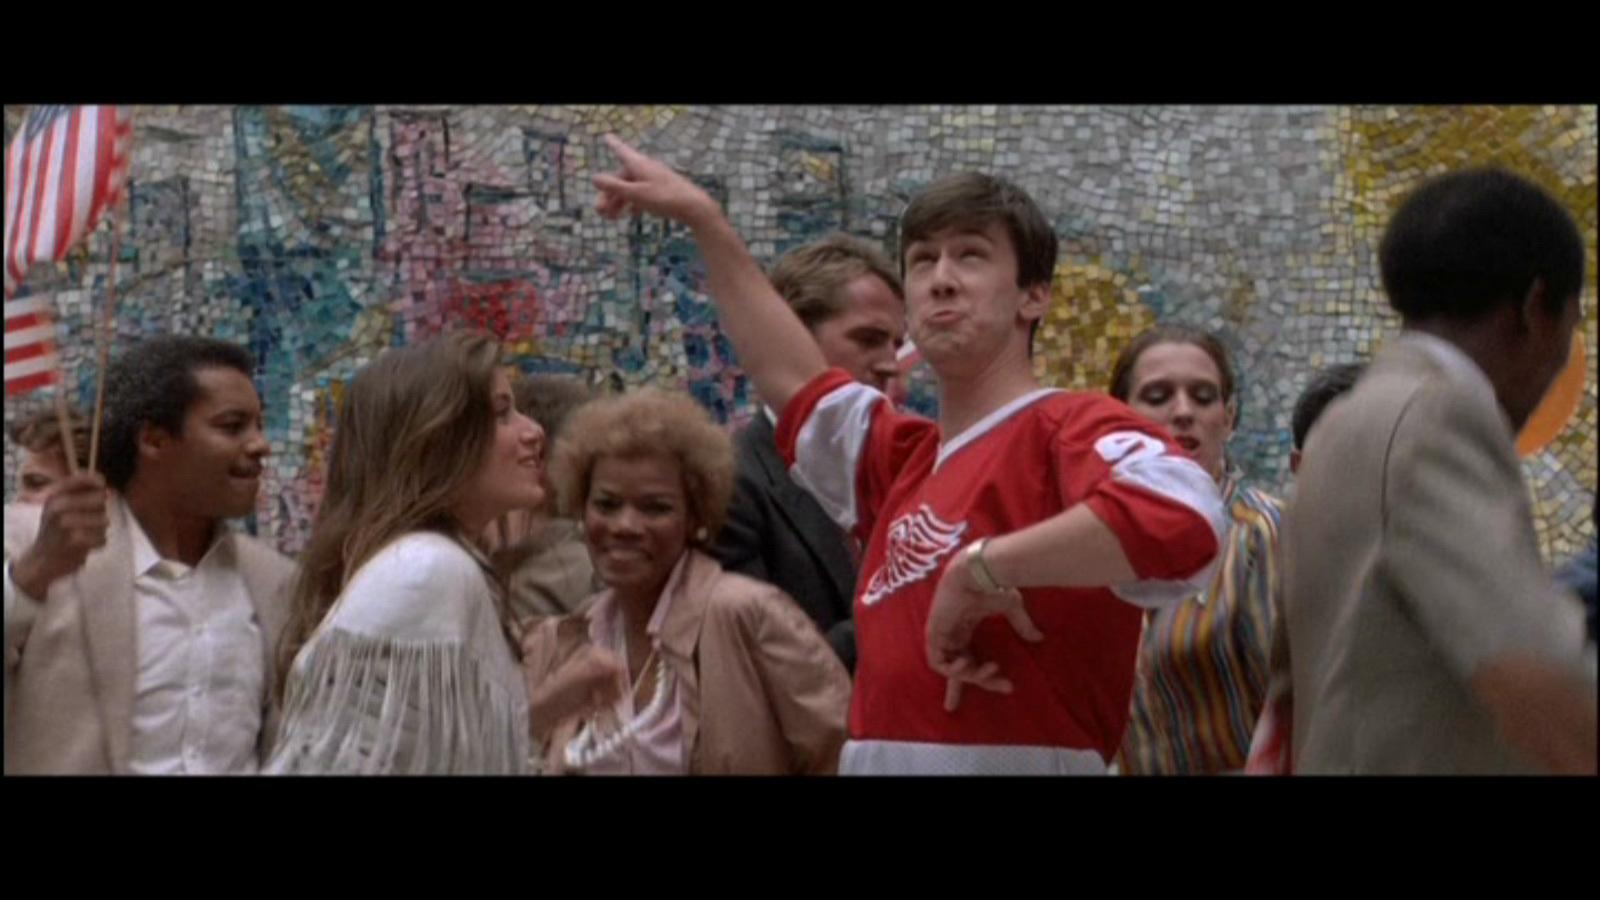 Ferris Bueller image Ferris Bueller's Day Off HD wallpapers and